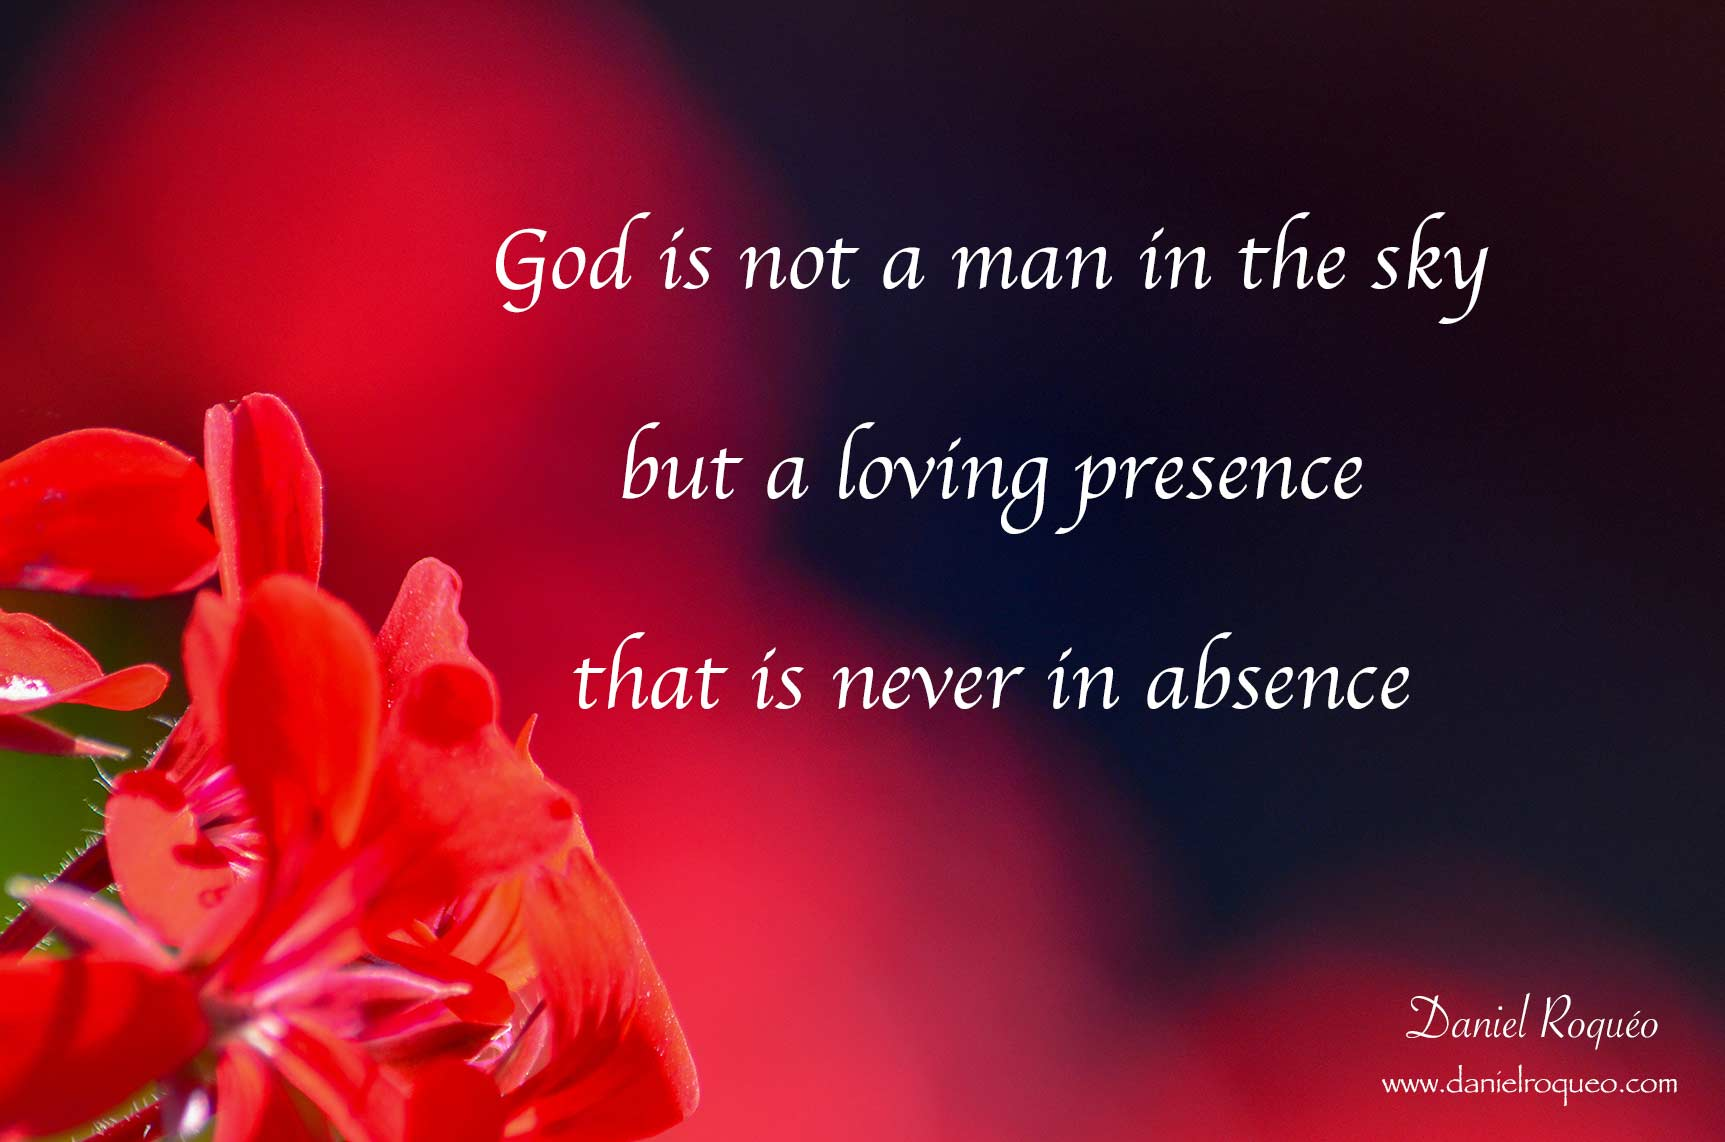 God is a loving presence that is never in absence